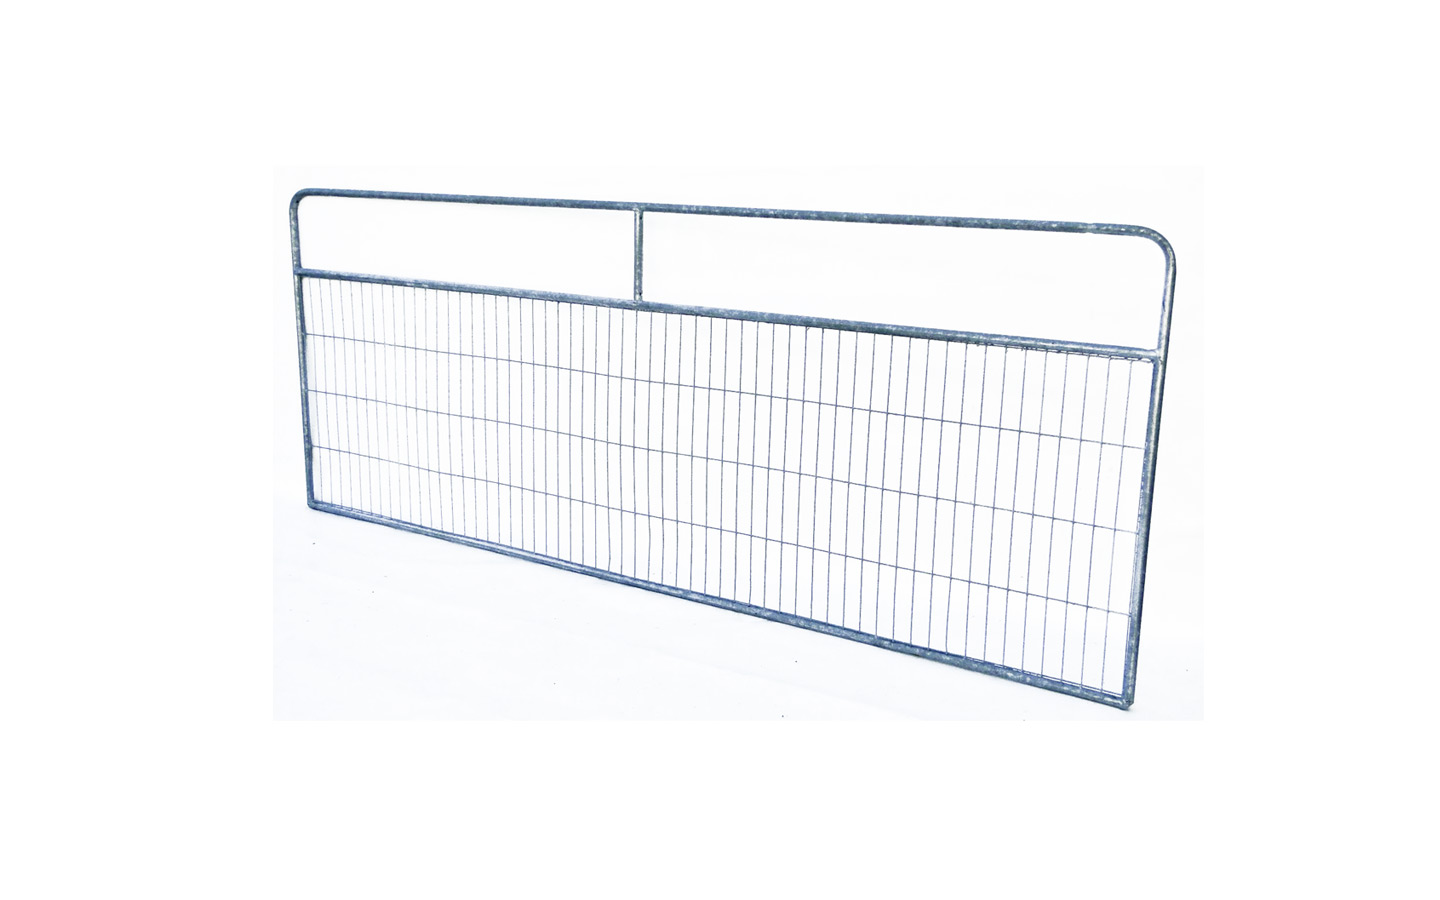 10 Crowd Control Fence Outfront Portable Solutions